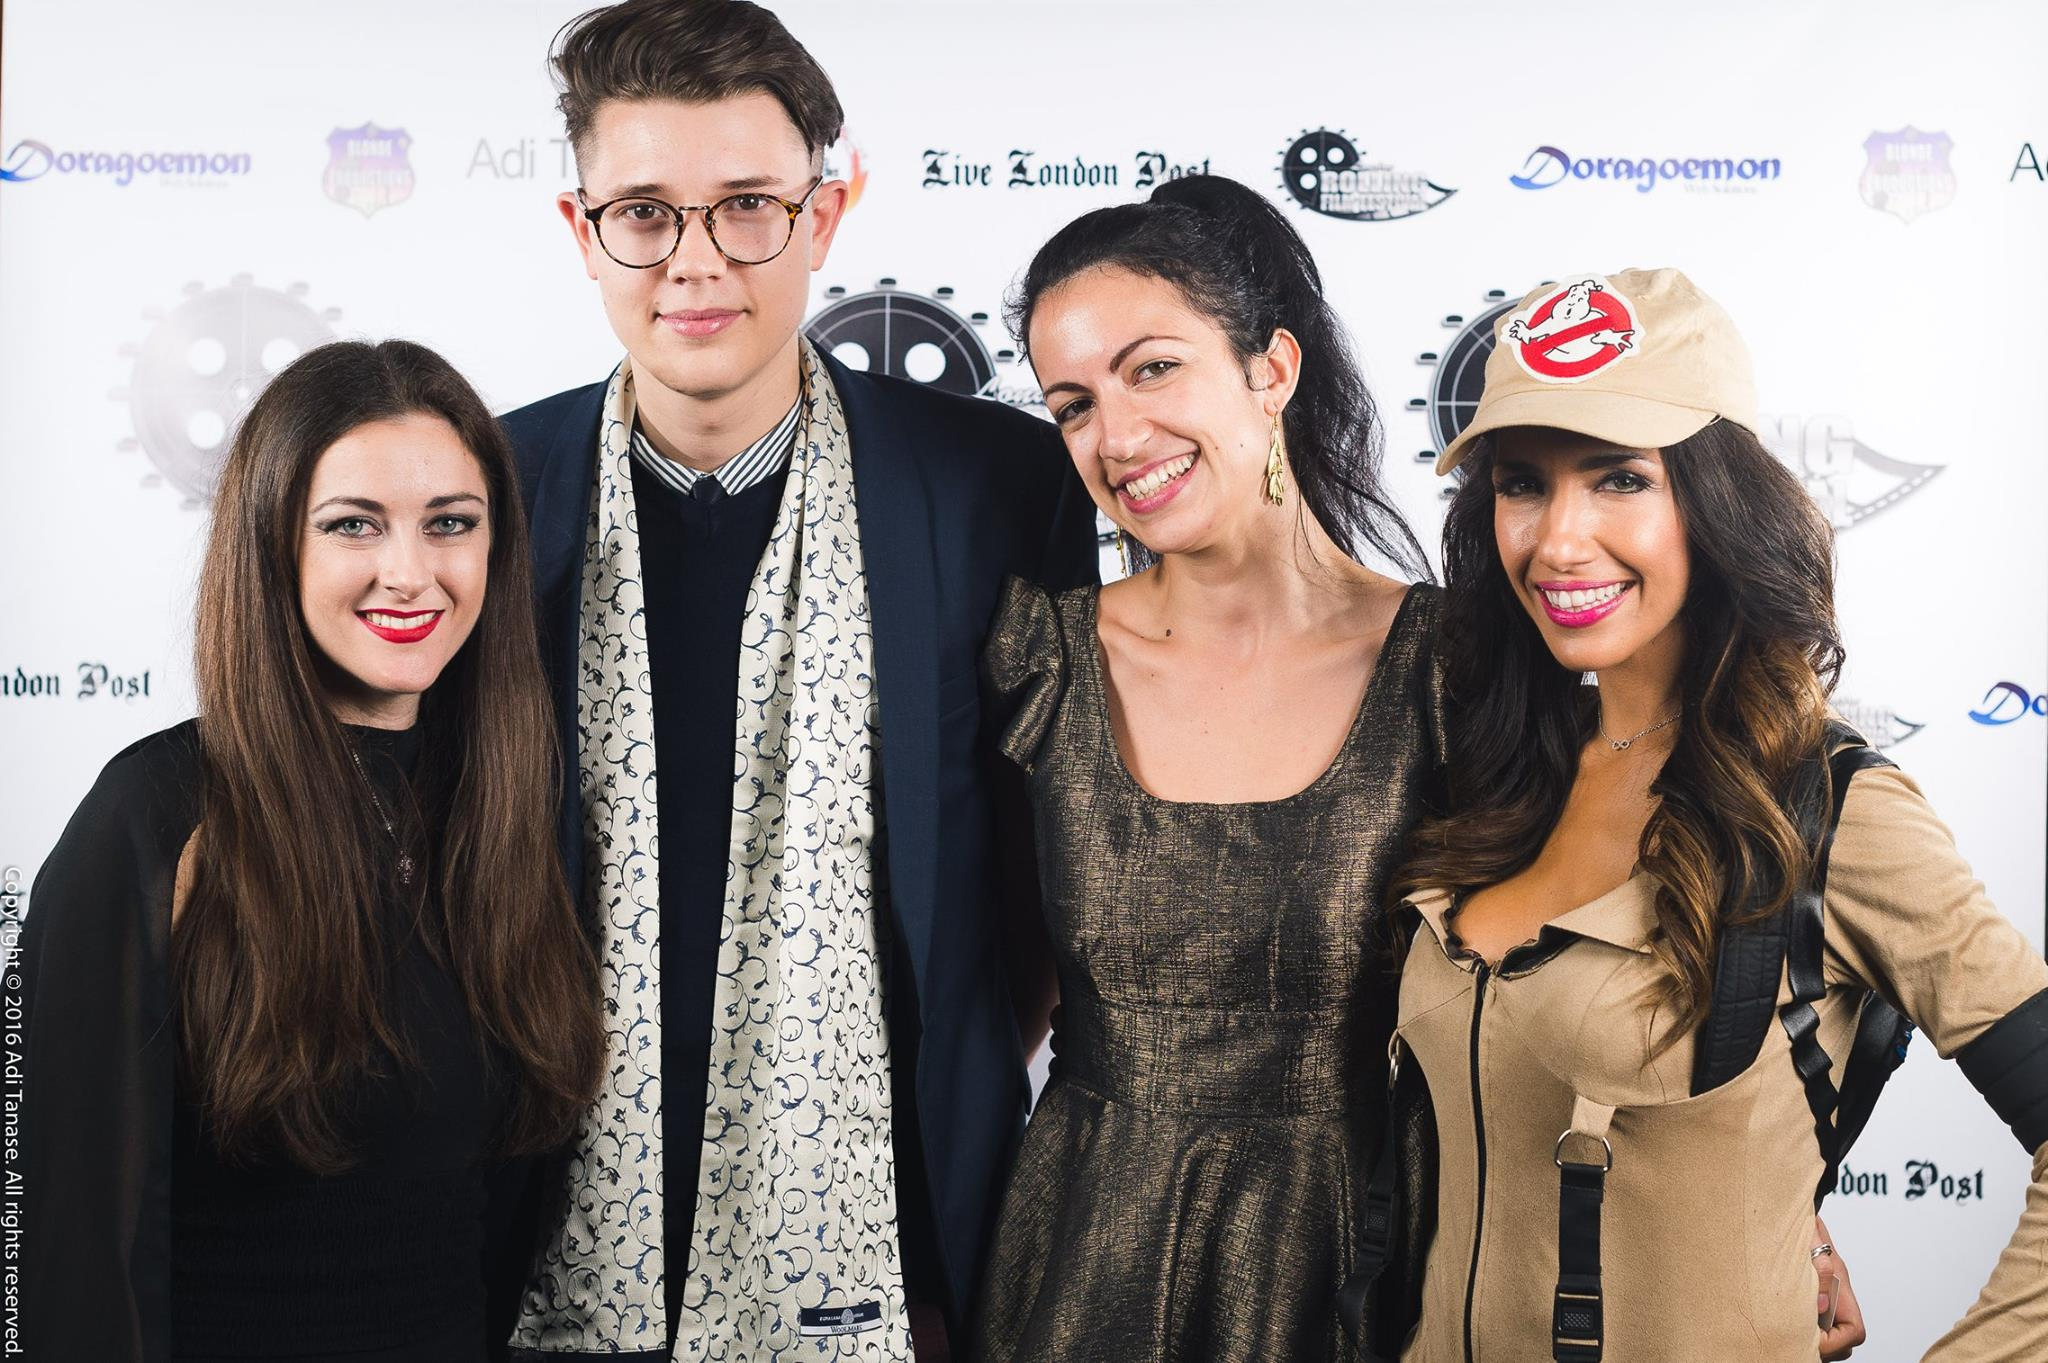 At the premiere of Horla in London with host actress Alida Pantone and guest stars.